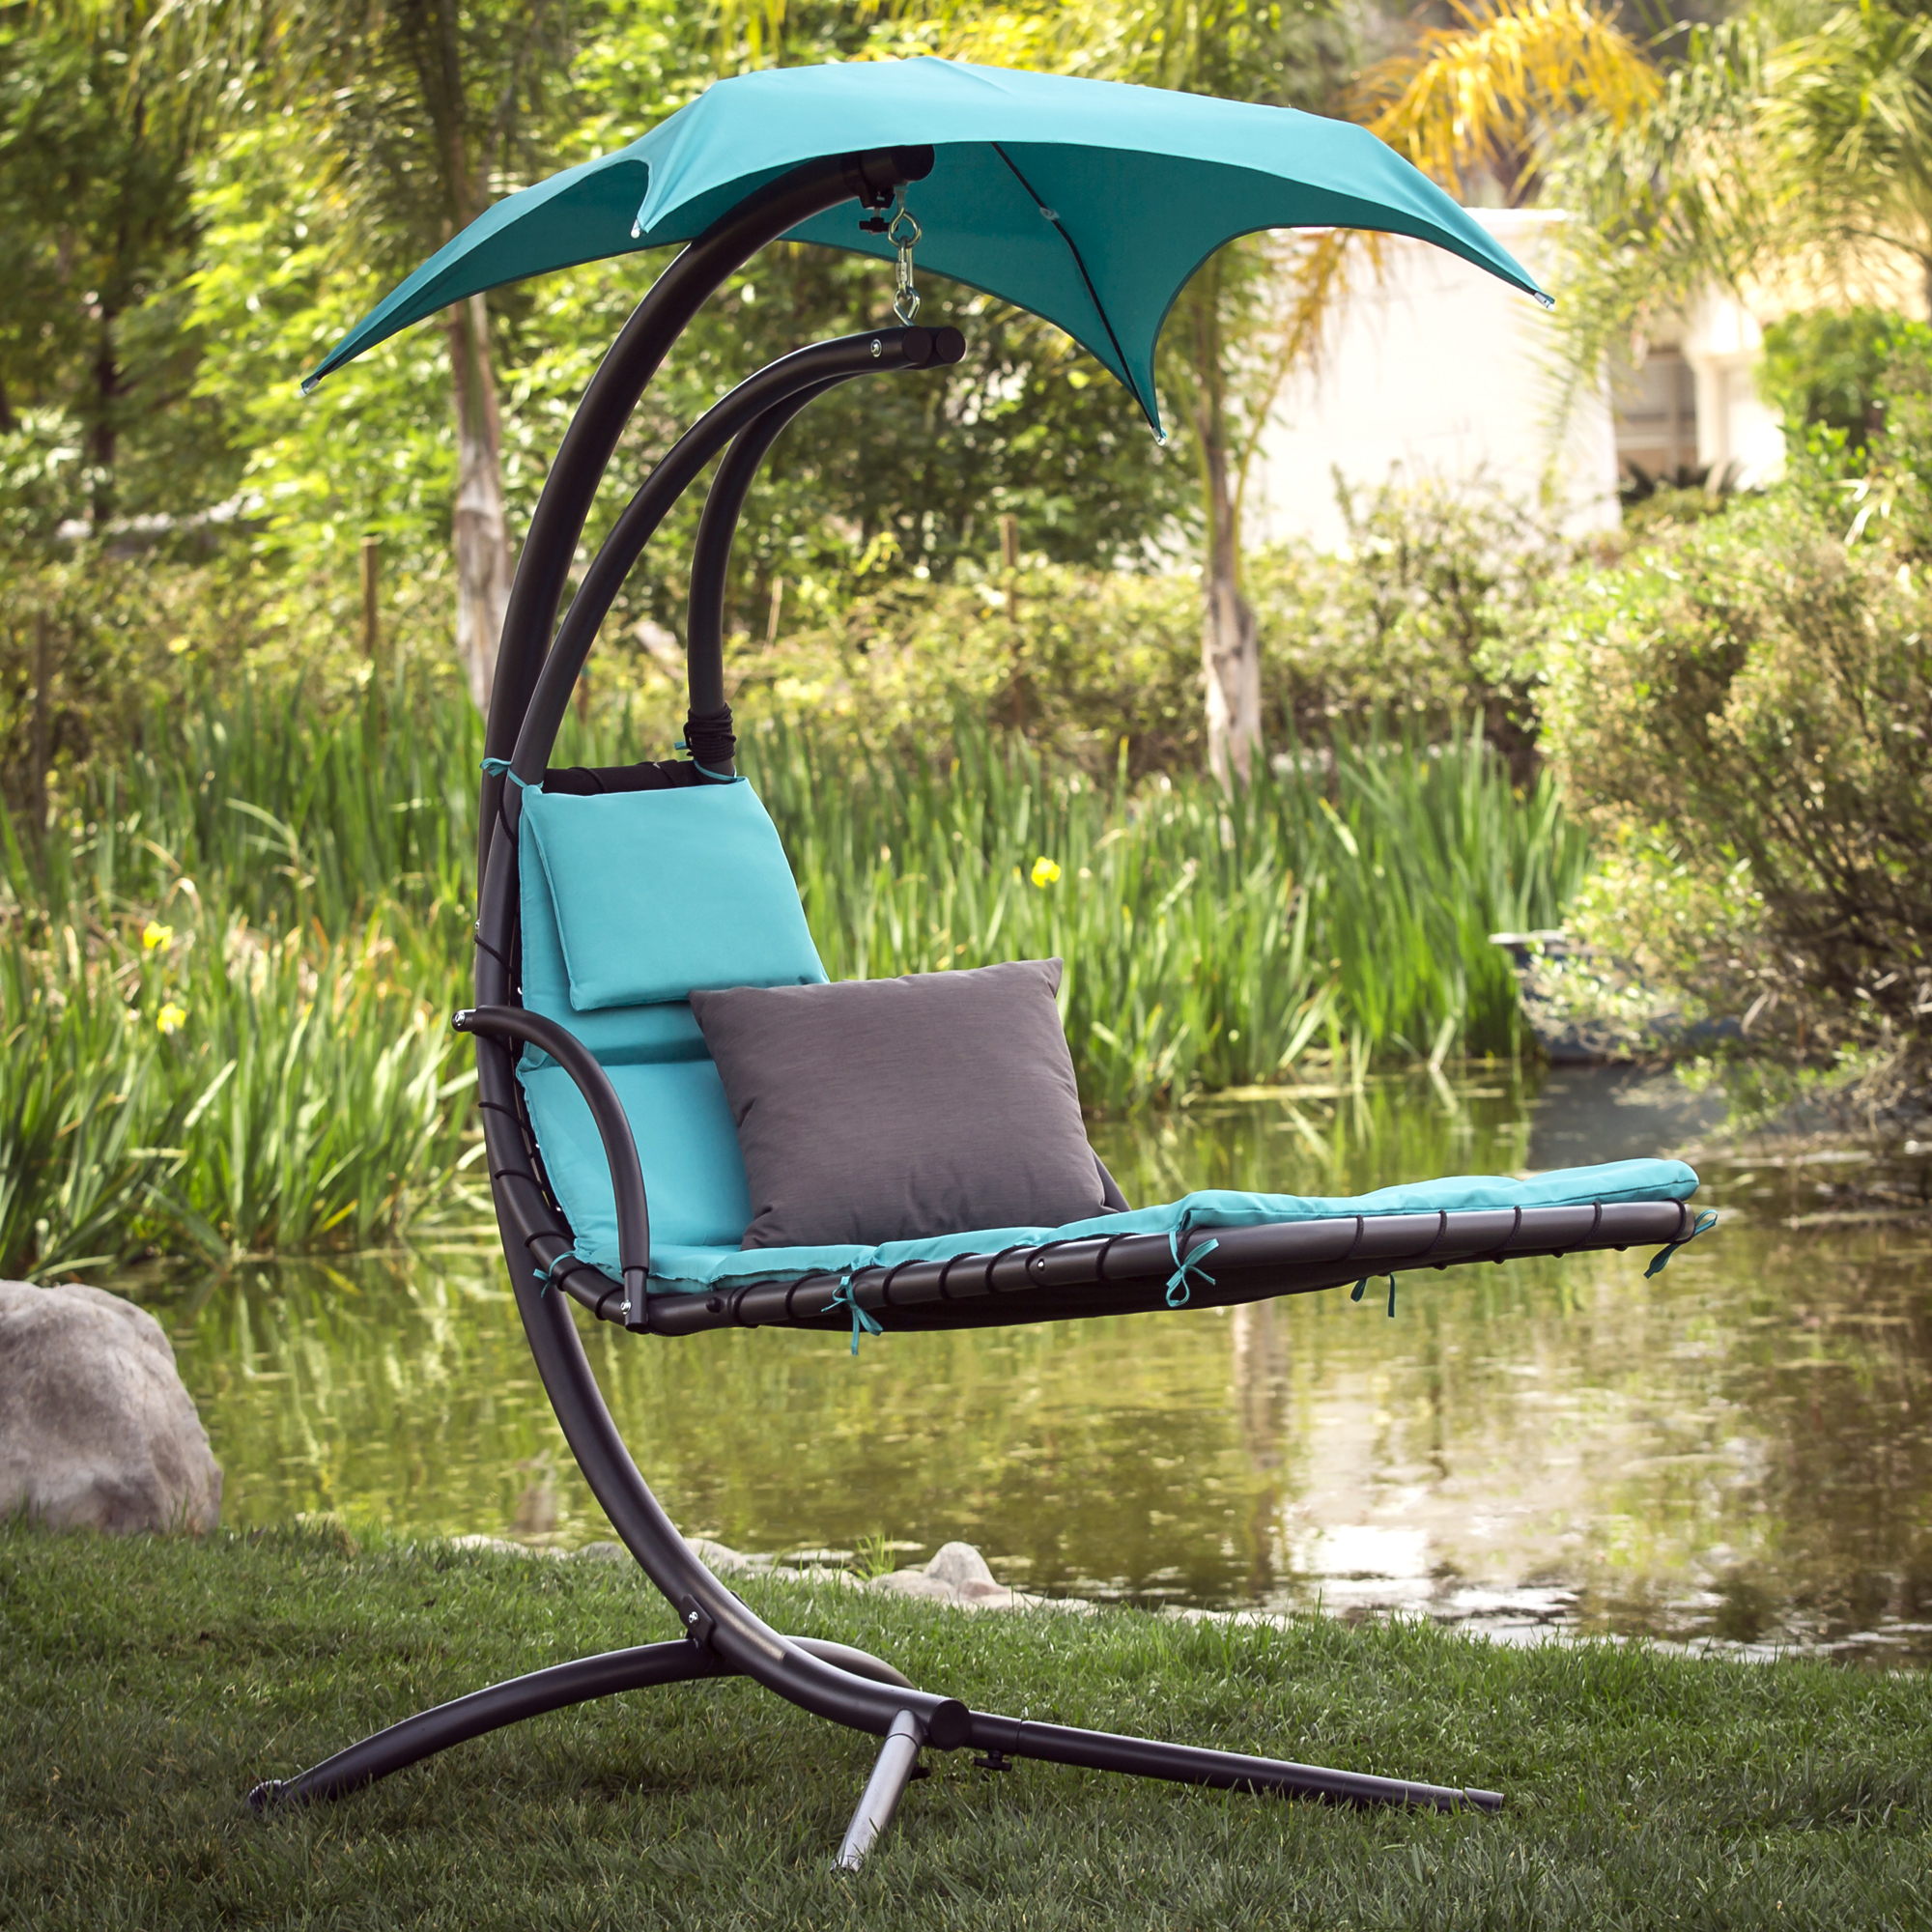 Best Choice Products Outdoor Porch Hanging Curved Chaise Lounge Chair Swing  Hammock W/ Pillow,